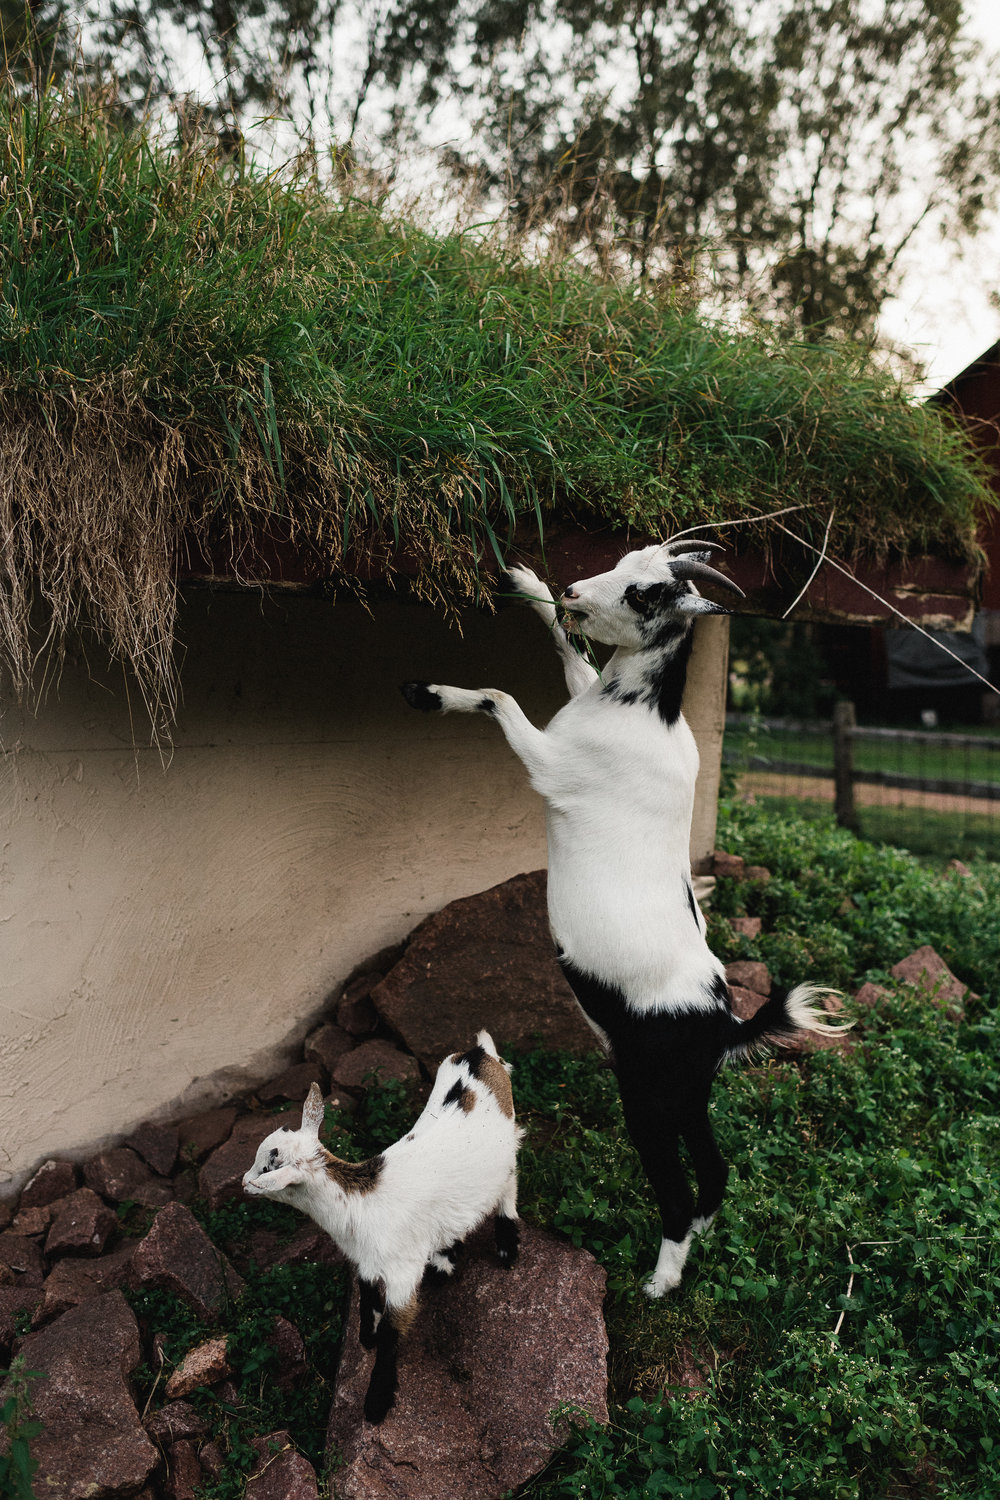 A black and white goat stands on its hind legs to eat grass off of a rooftop.